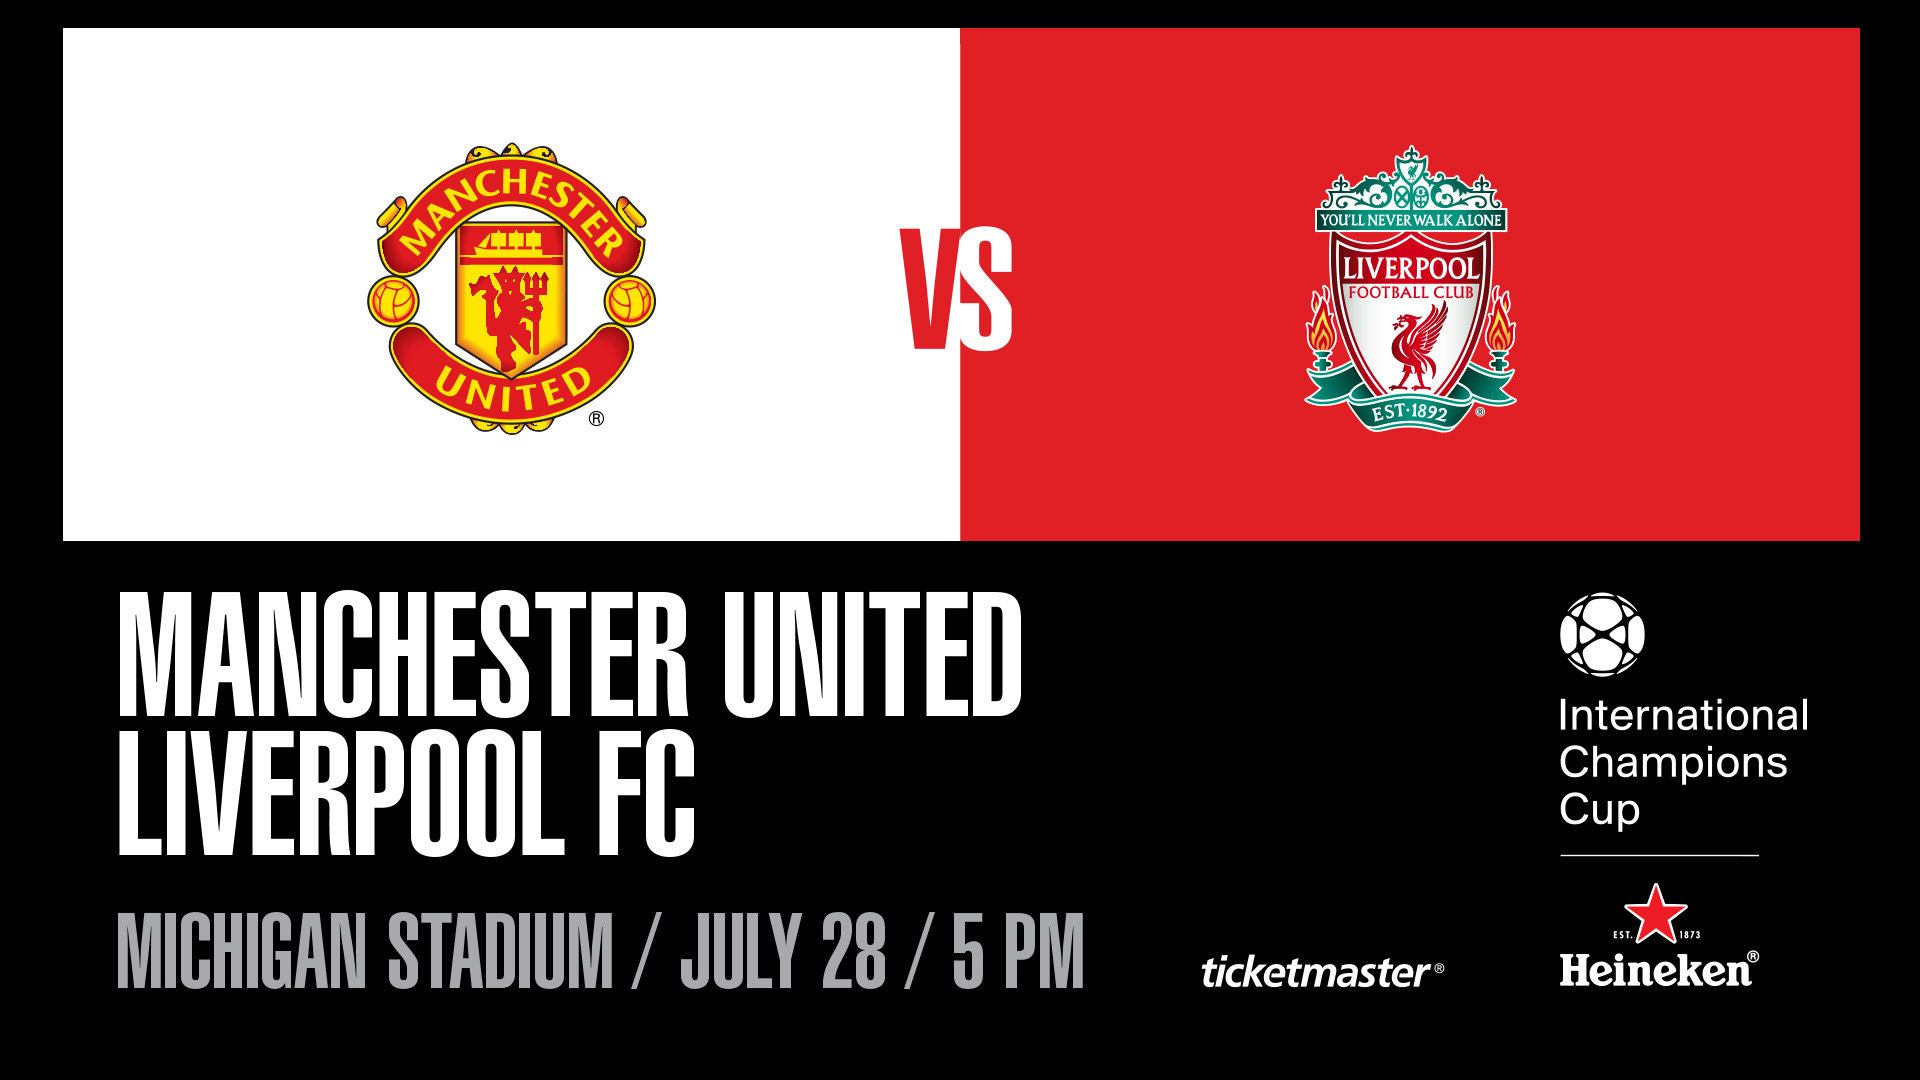 fe32ff64574 University of Michigan to Host Manchester United-Liverpool F.C. Match